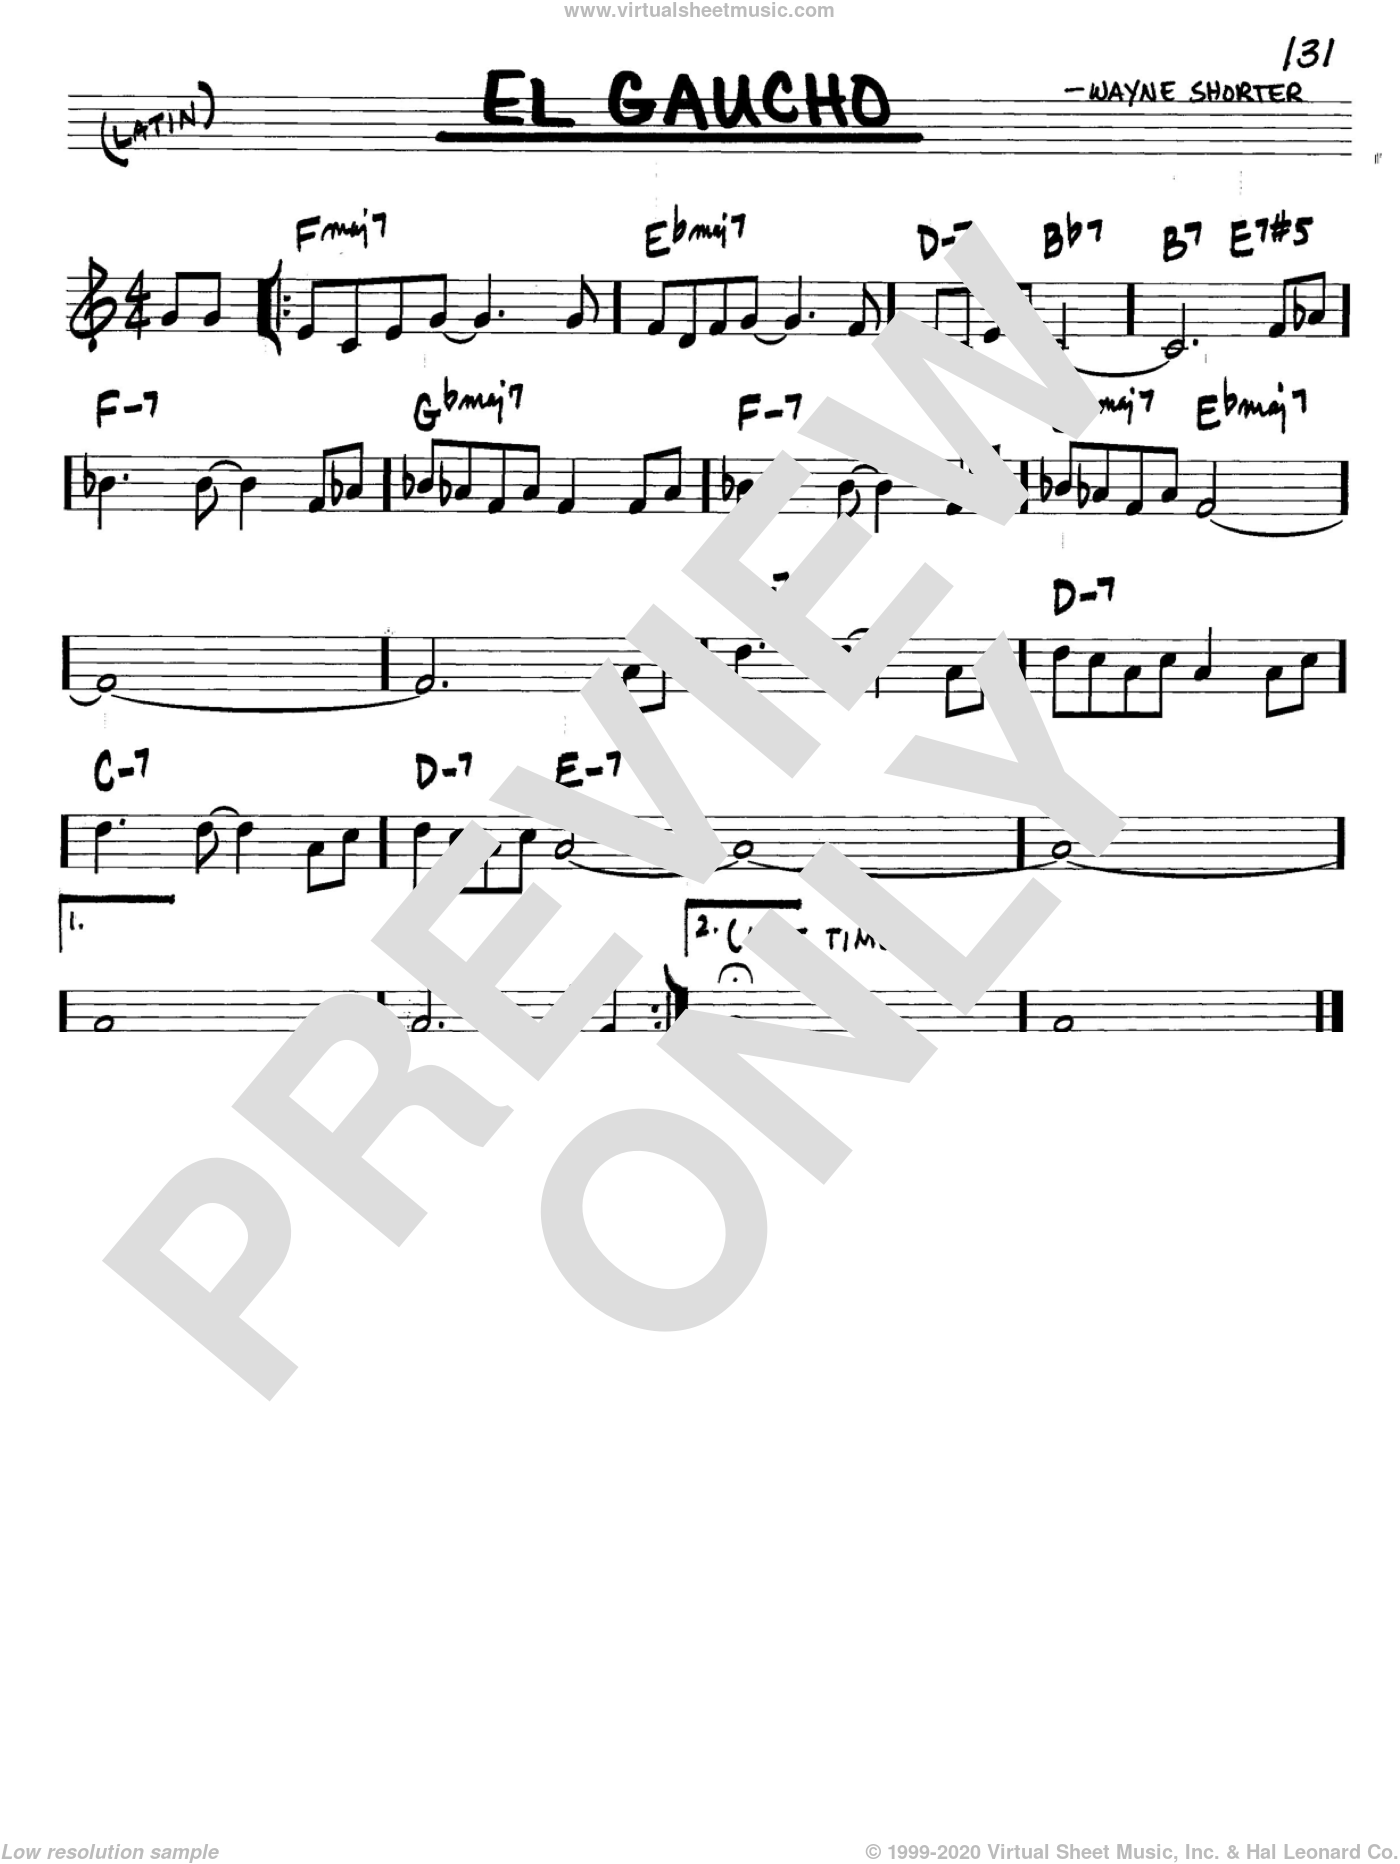 El Gaucho sheet music for voice and other instruments (C) by Wayne Shorter